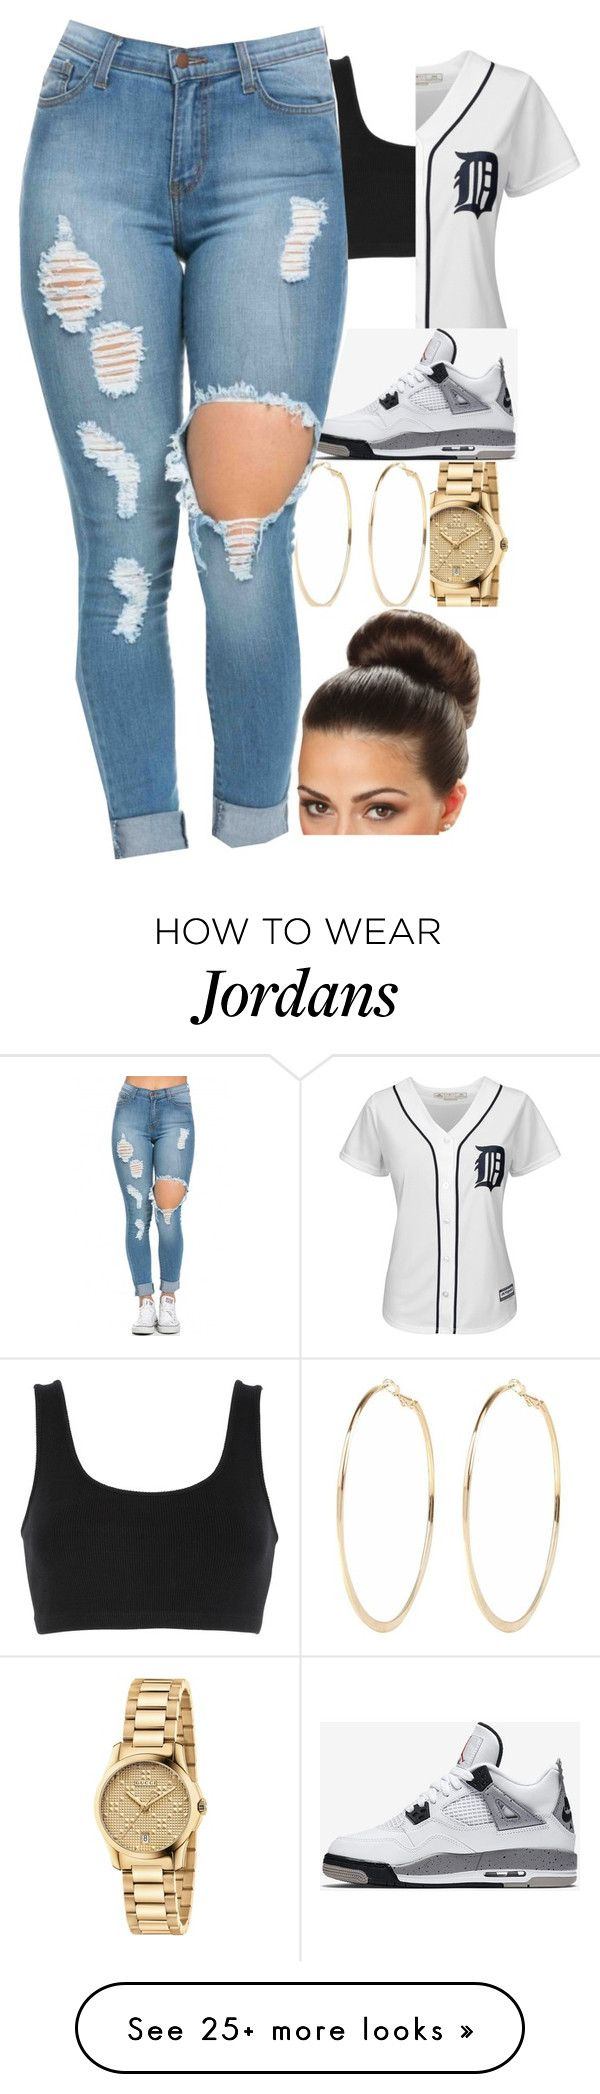 """Untitled #149"" by bawatson926 on Polyvore featuring adidas Originals, Majestic, Gucci, River Island and NIKE"